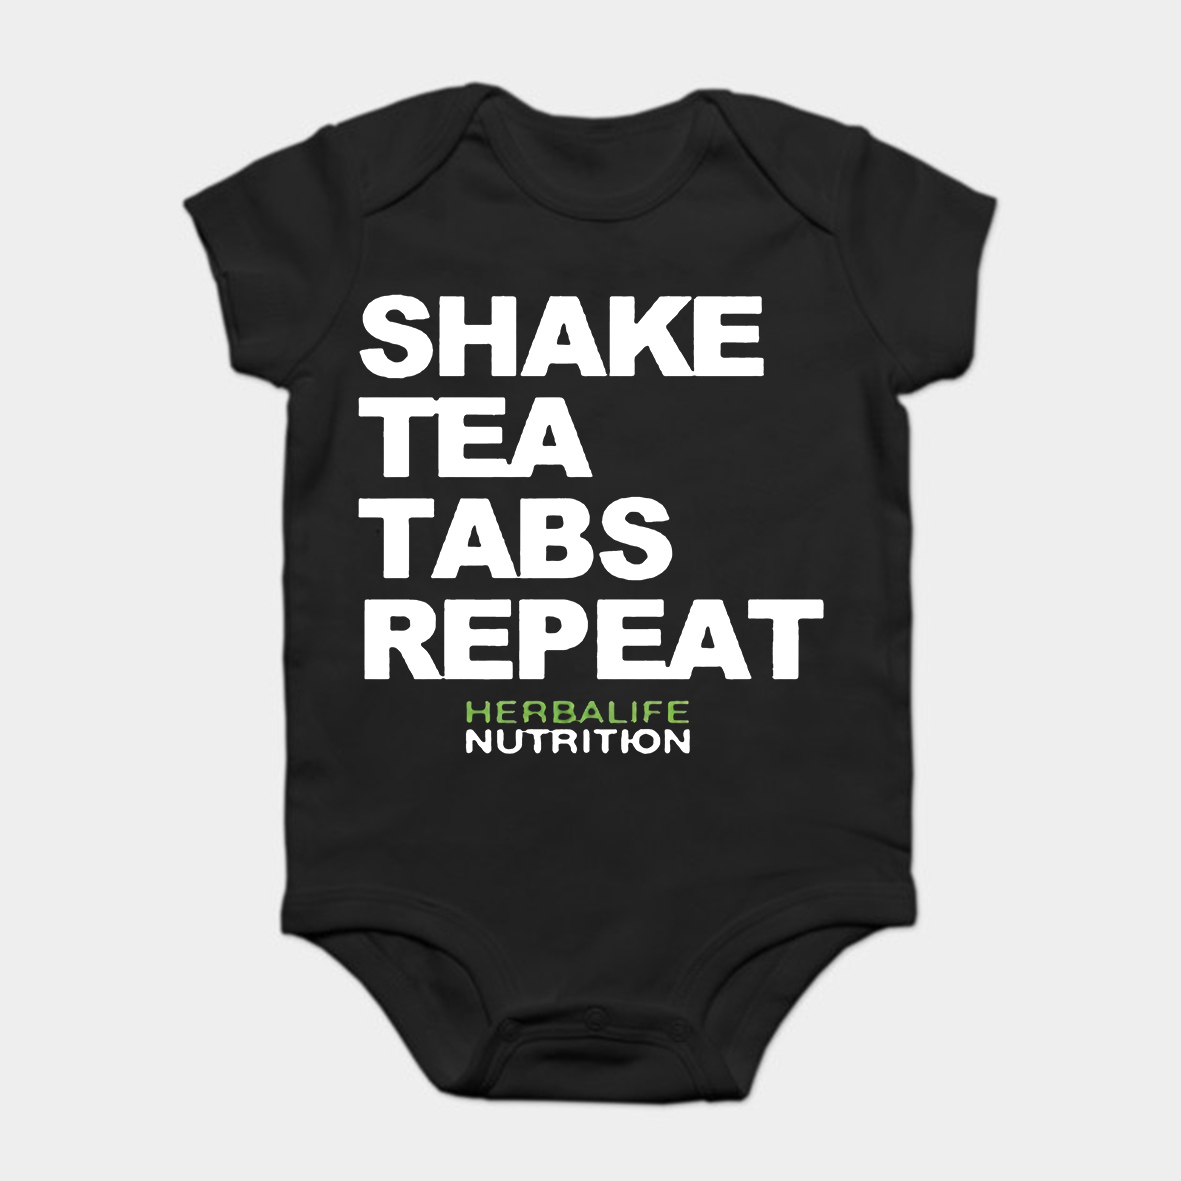 US $10 79 10% OFF|Baby Onesie Baby Bodysuits kid t shirt Details About  Herbalife Nutrition Shake Tea Tabs Repeat Black Male-in Bodysuits from  Mother &